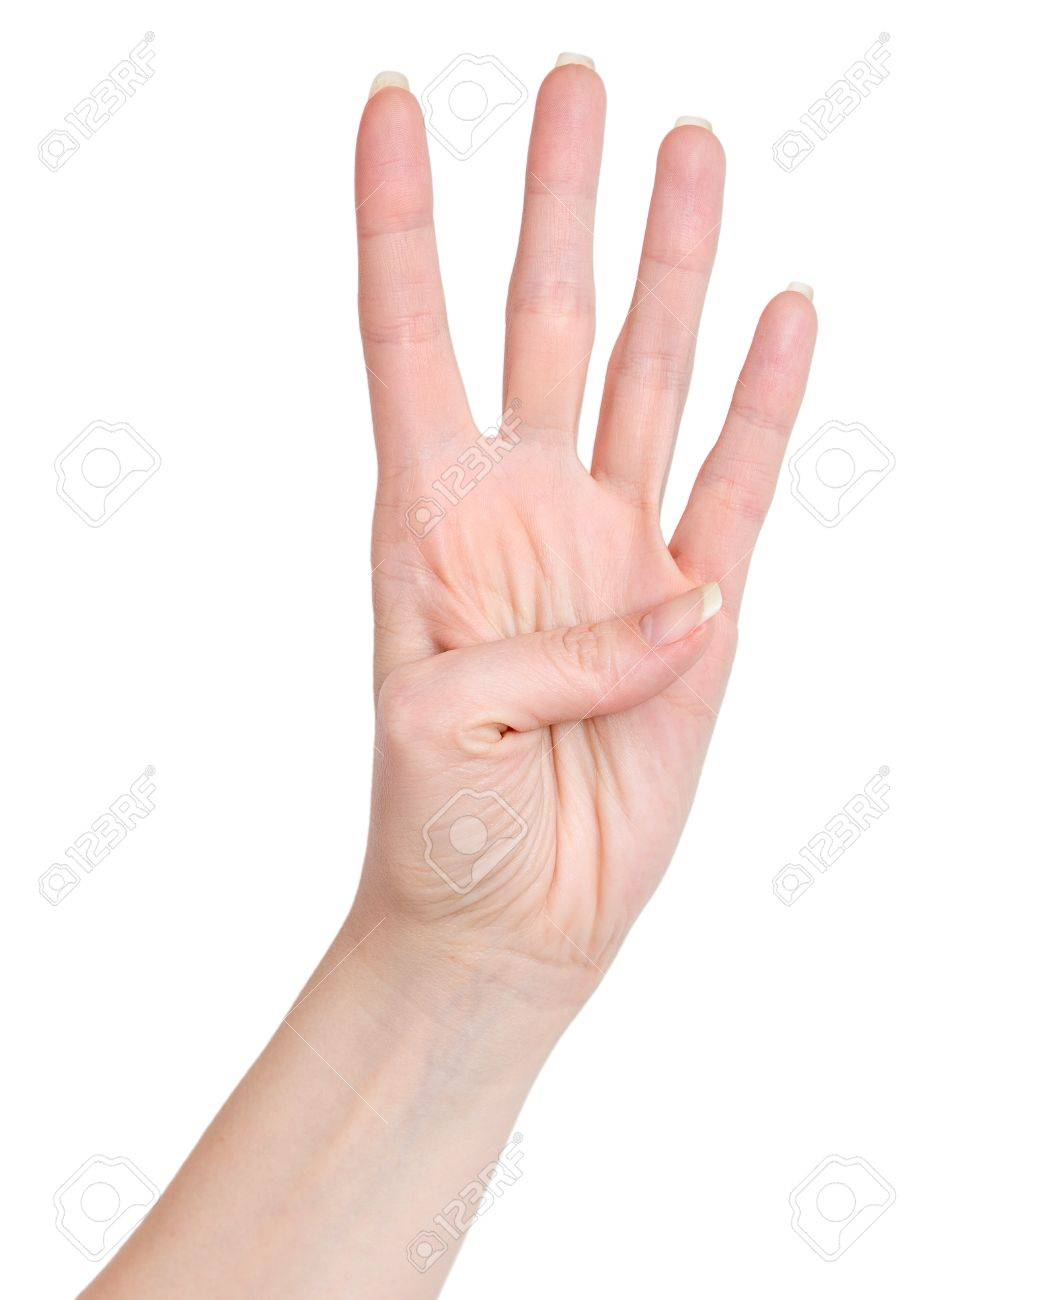 Female Hand Showing Four Count. Four Fingers Stock Photo, Picture ...